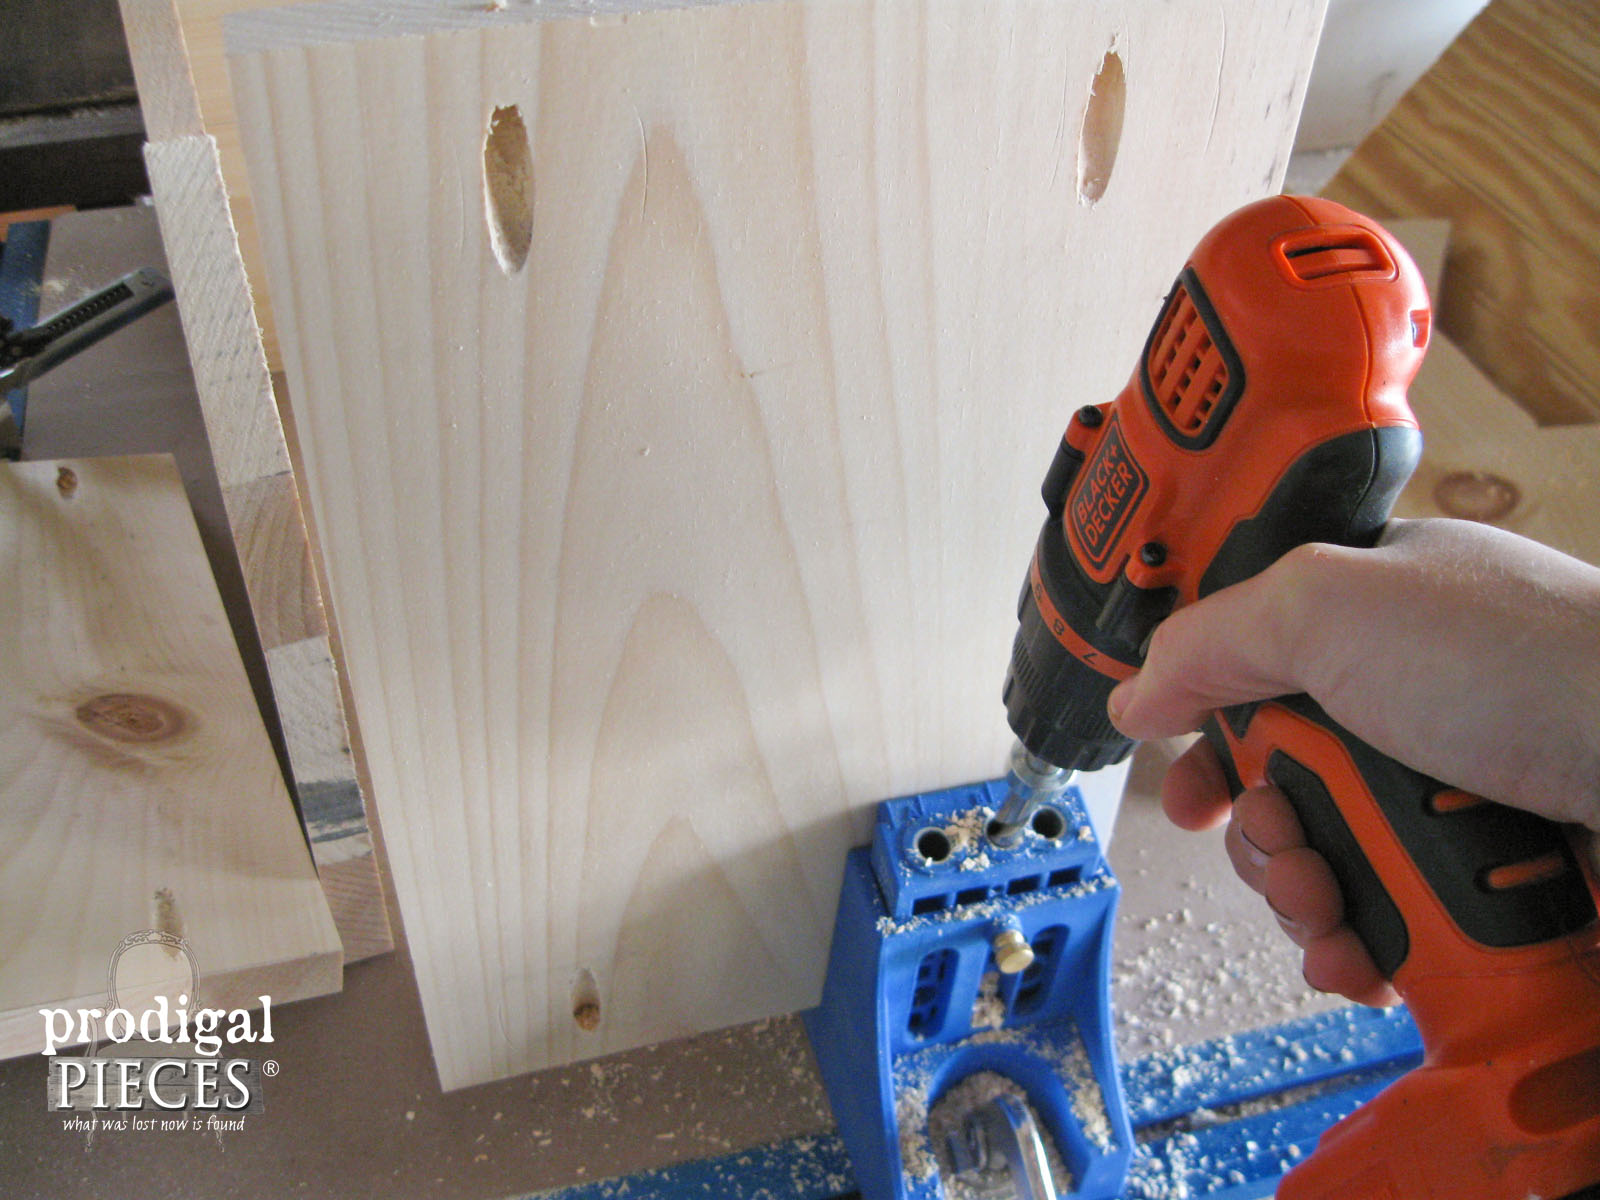 Kreg Jig for Pocket Screw Holes in Storage Bin | Prodigal Pieces | www.prodigalpieces.com